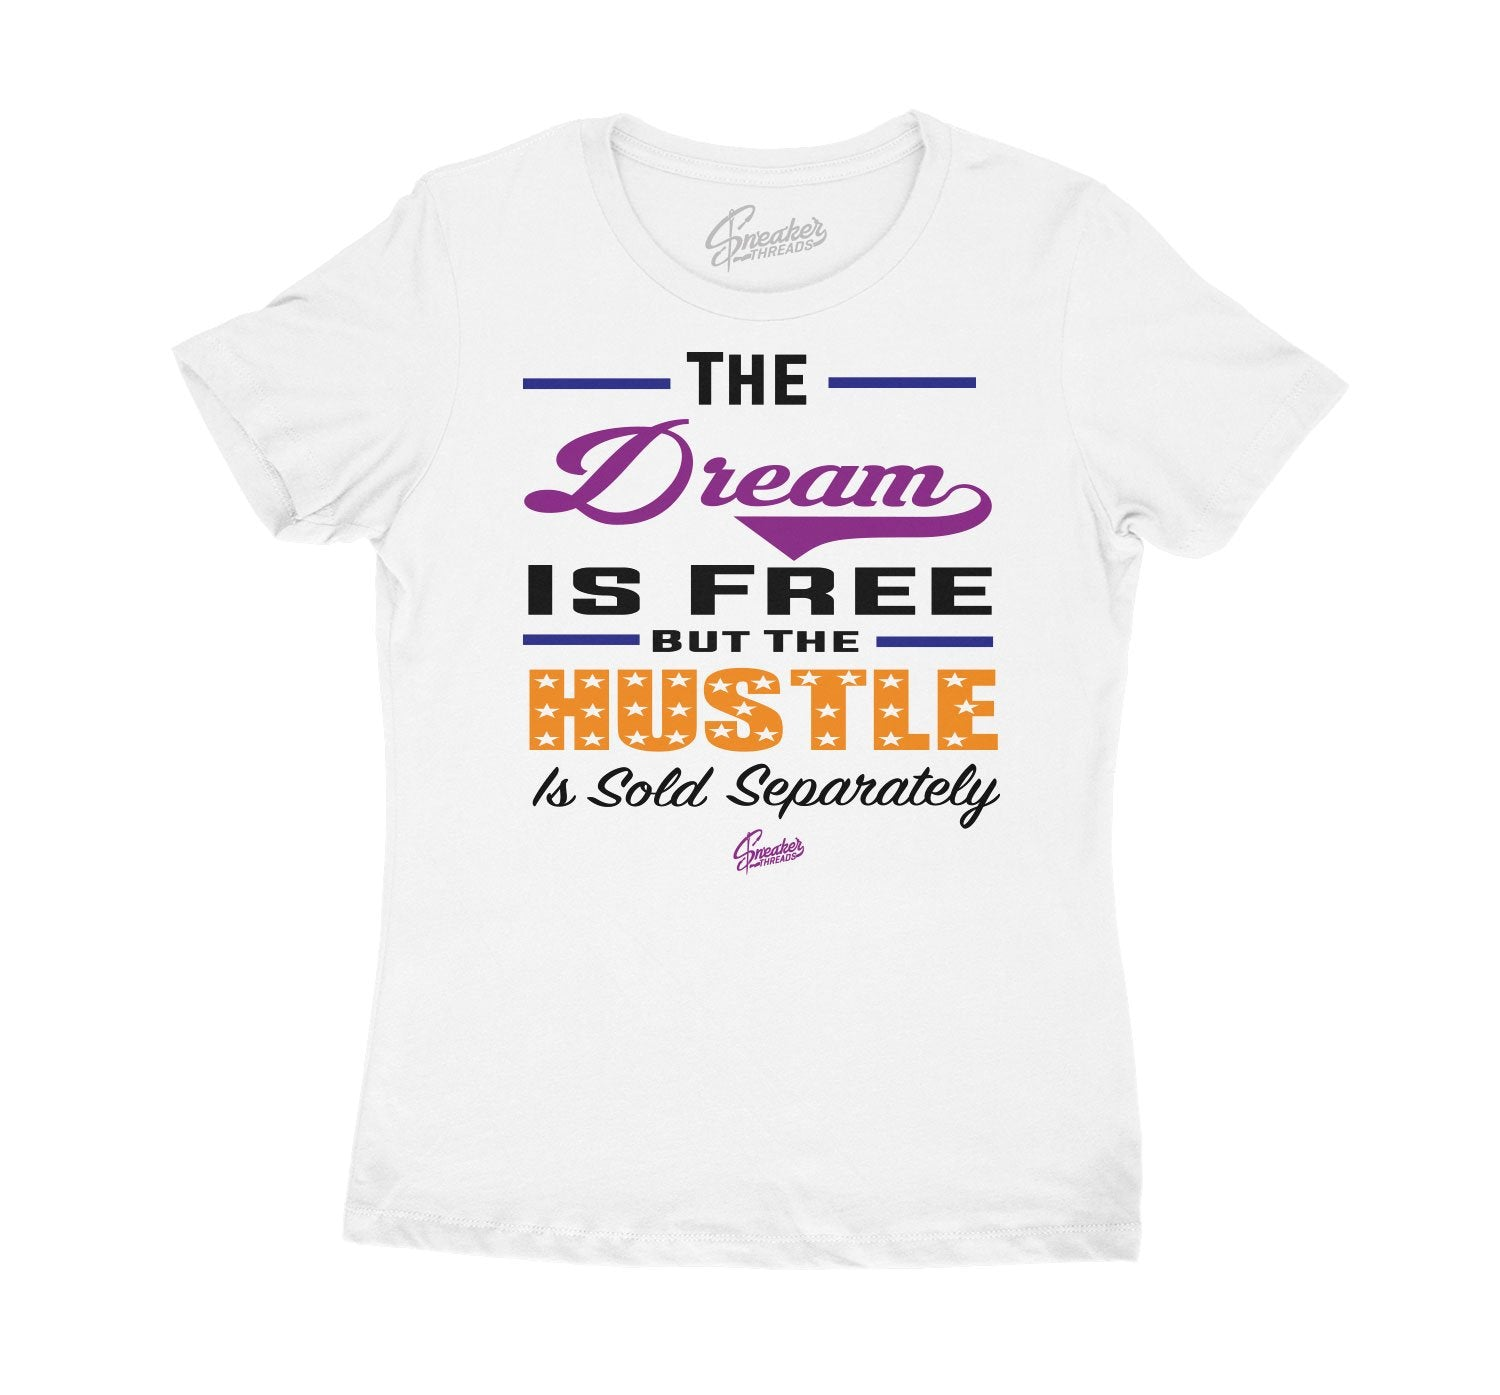 Women Dopest shirts to match Jordan 4 Rush Violet